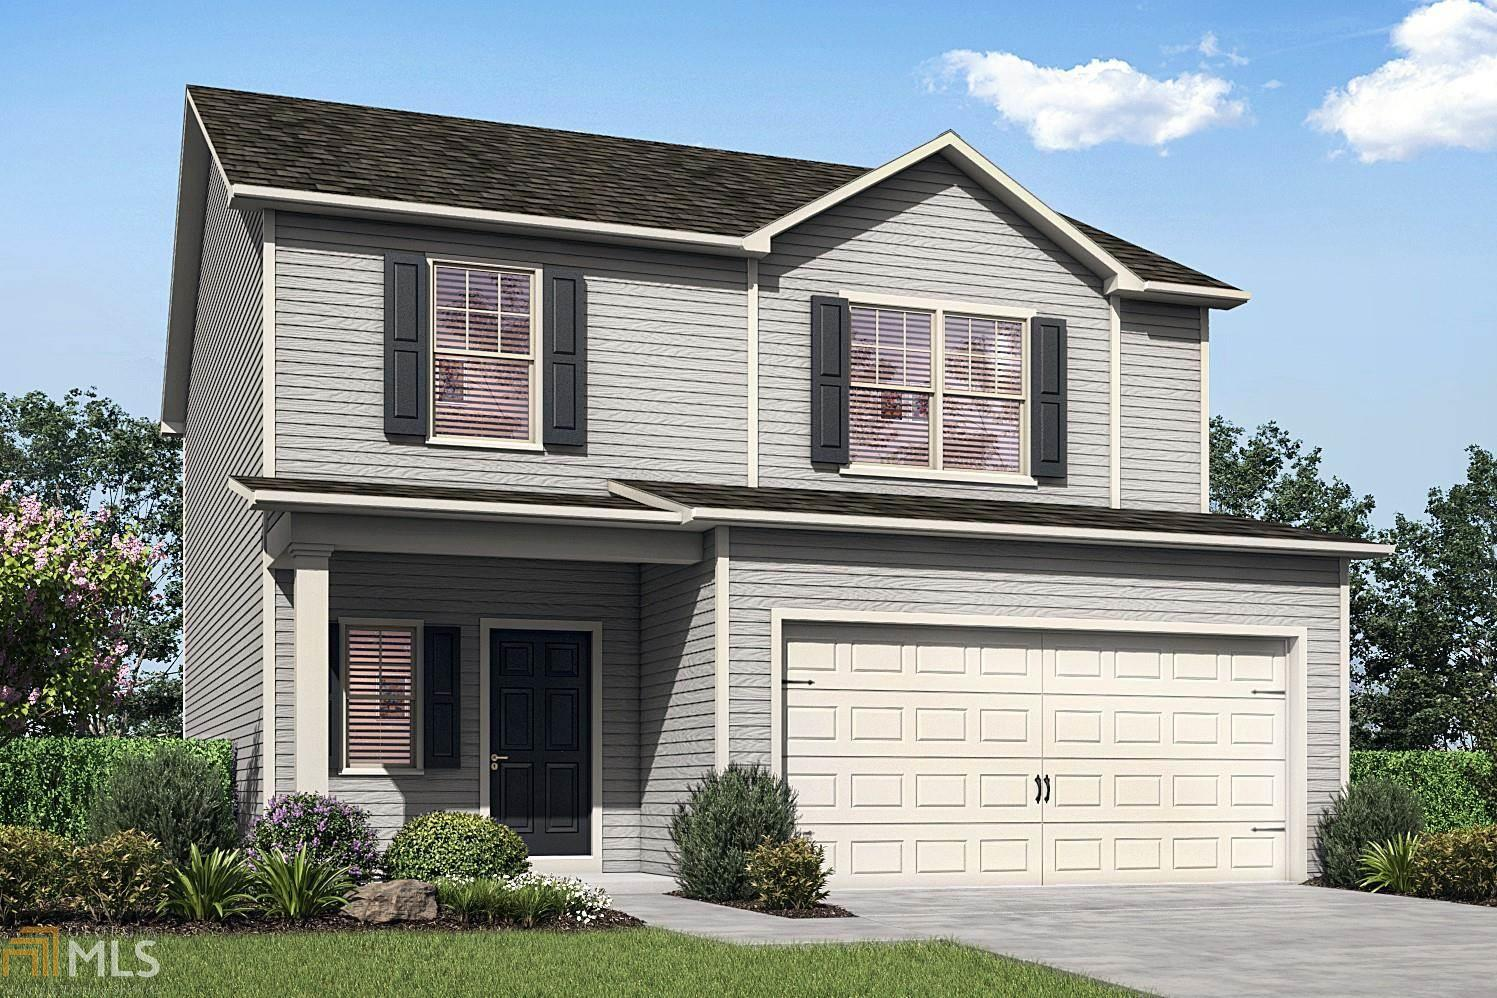 Image for property 3290 Ridge Hill Parkway, Douglasville, GA 30135